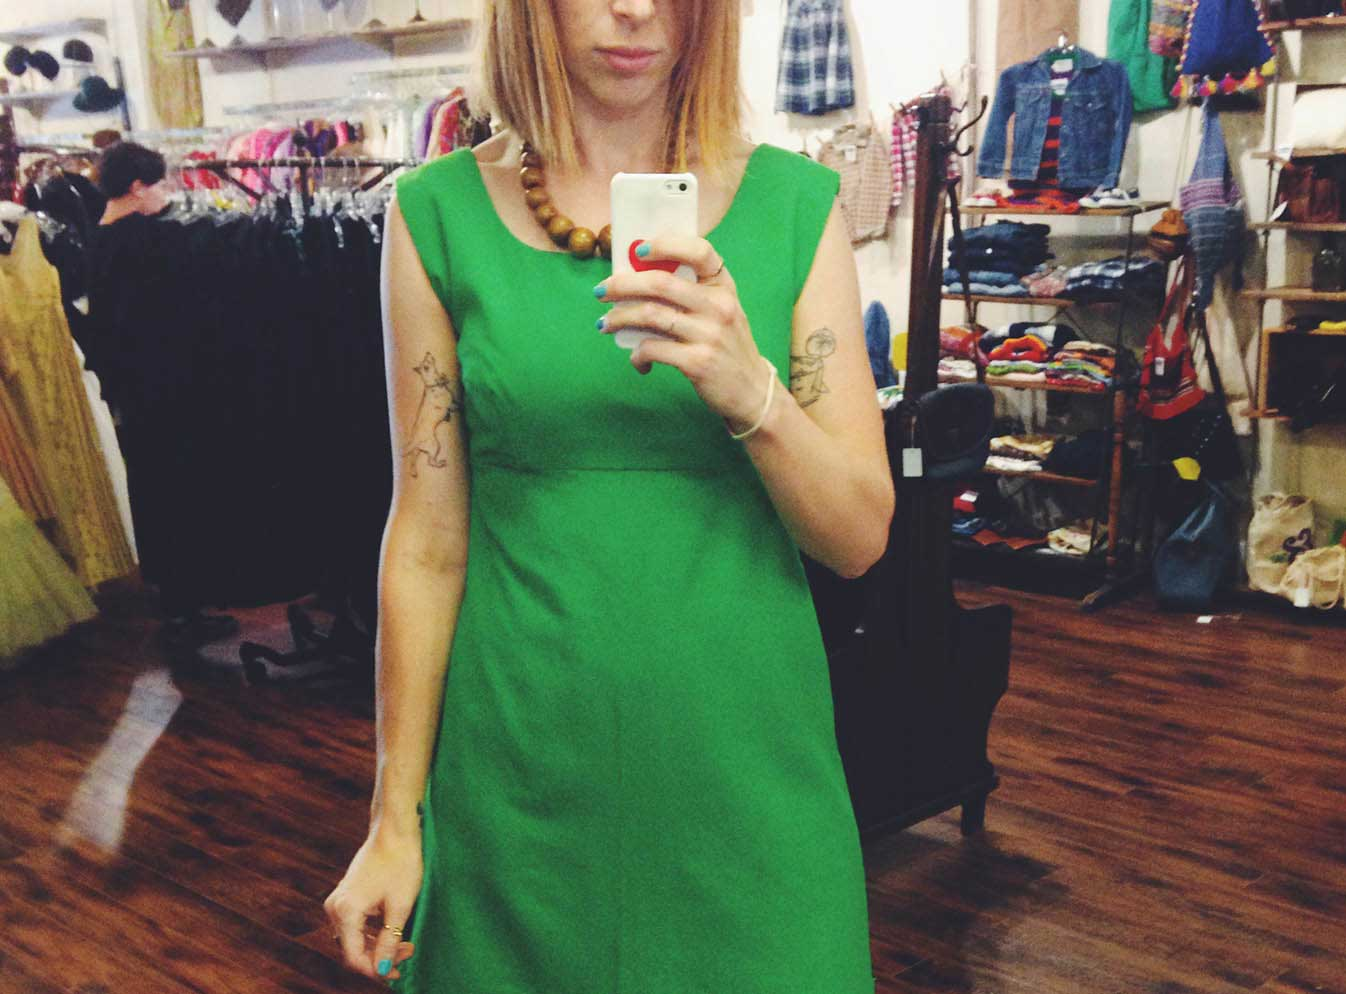 Girl in green dress taking a selfie